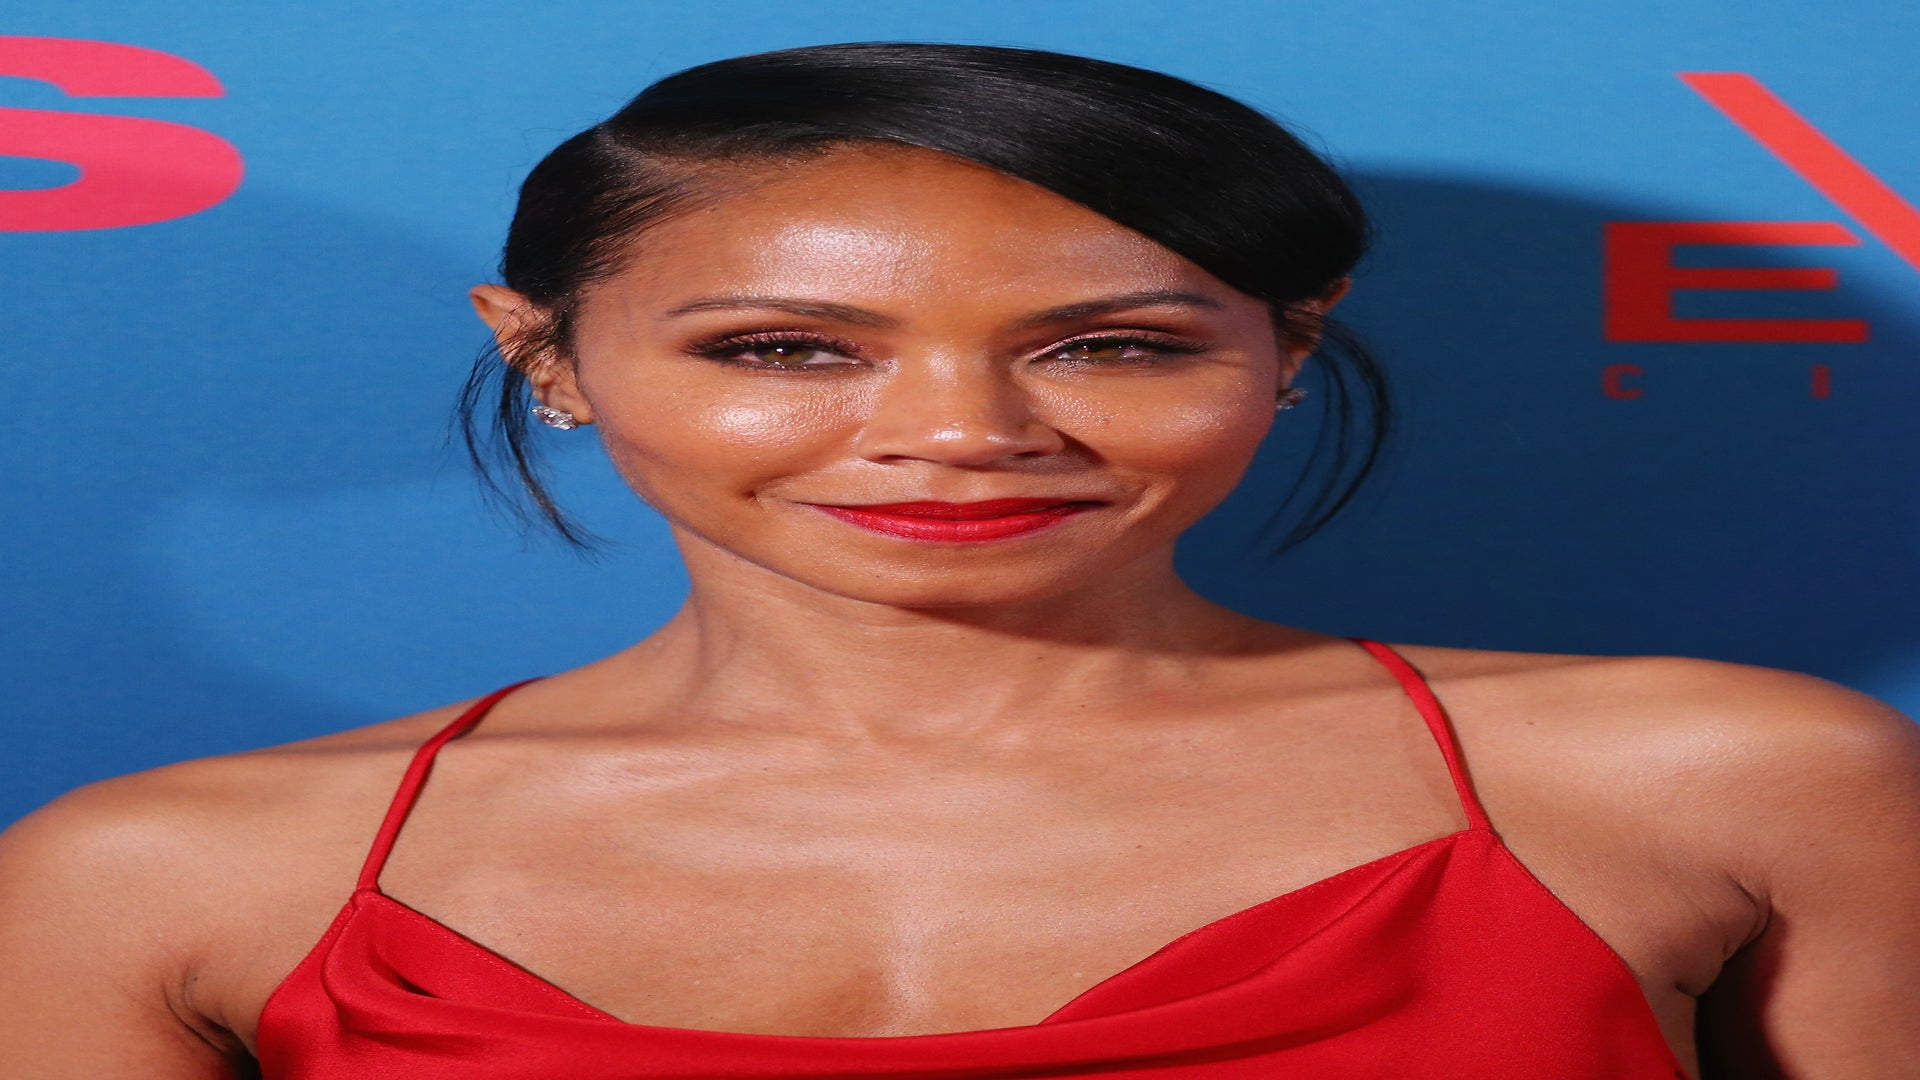 The Quick Read: Jada Pinkett Smith Tweets What We're All Thinking About Tiffany Haddish's Golden Globes Snub